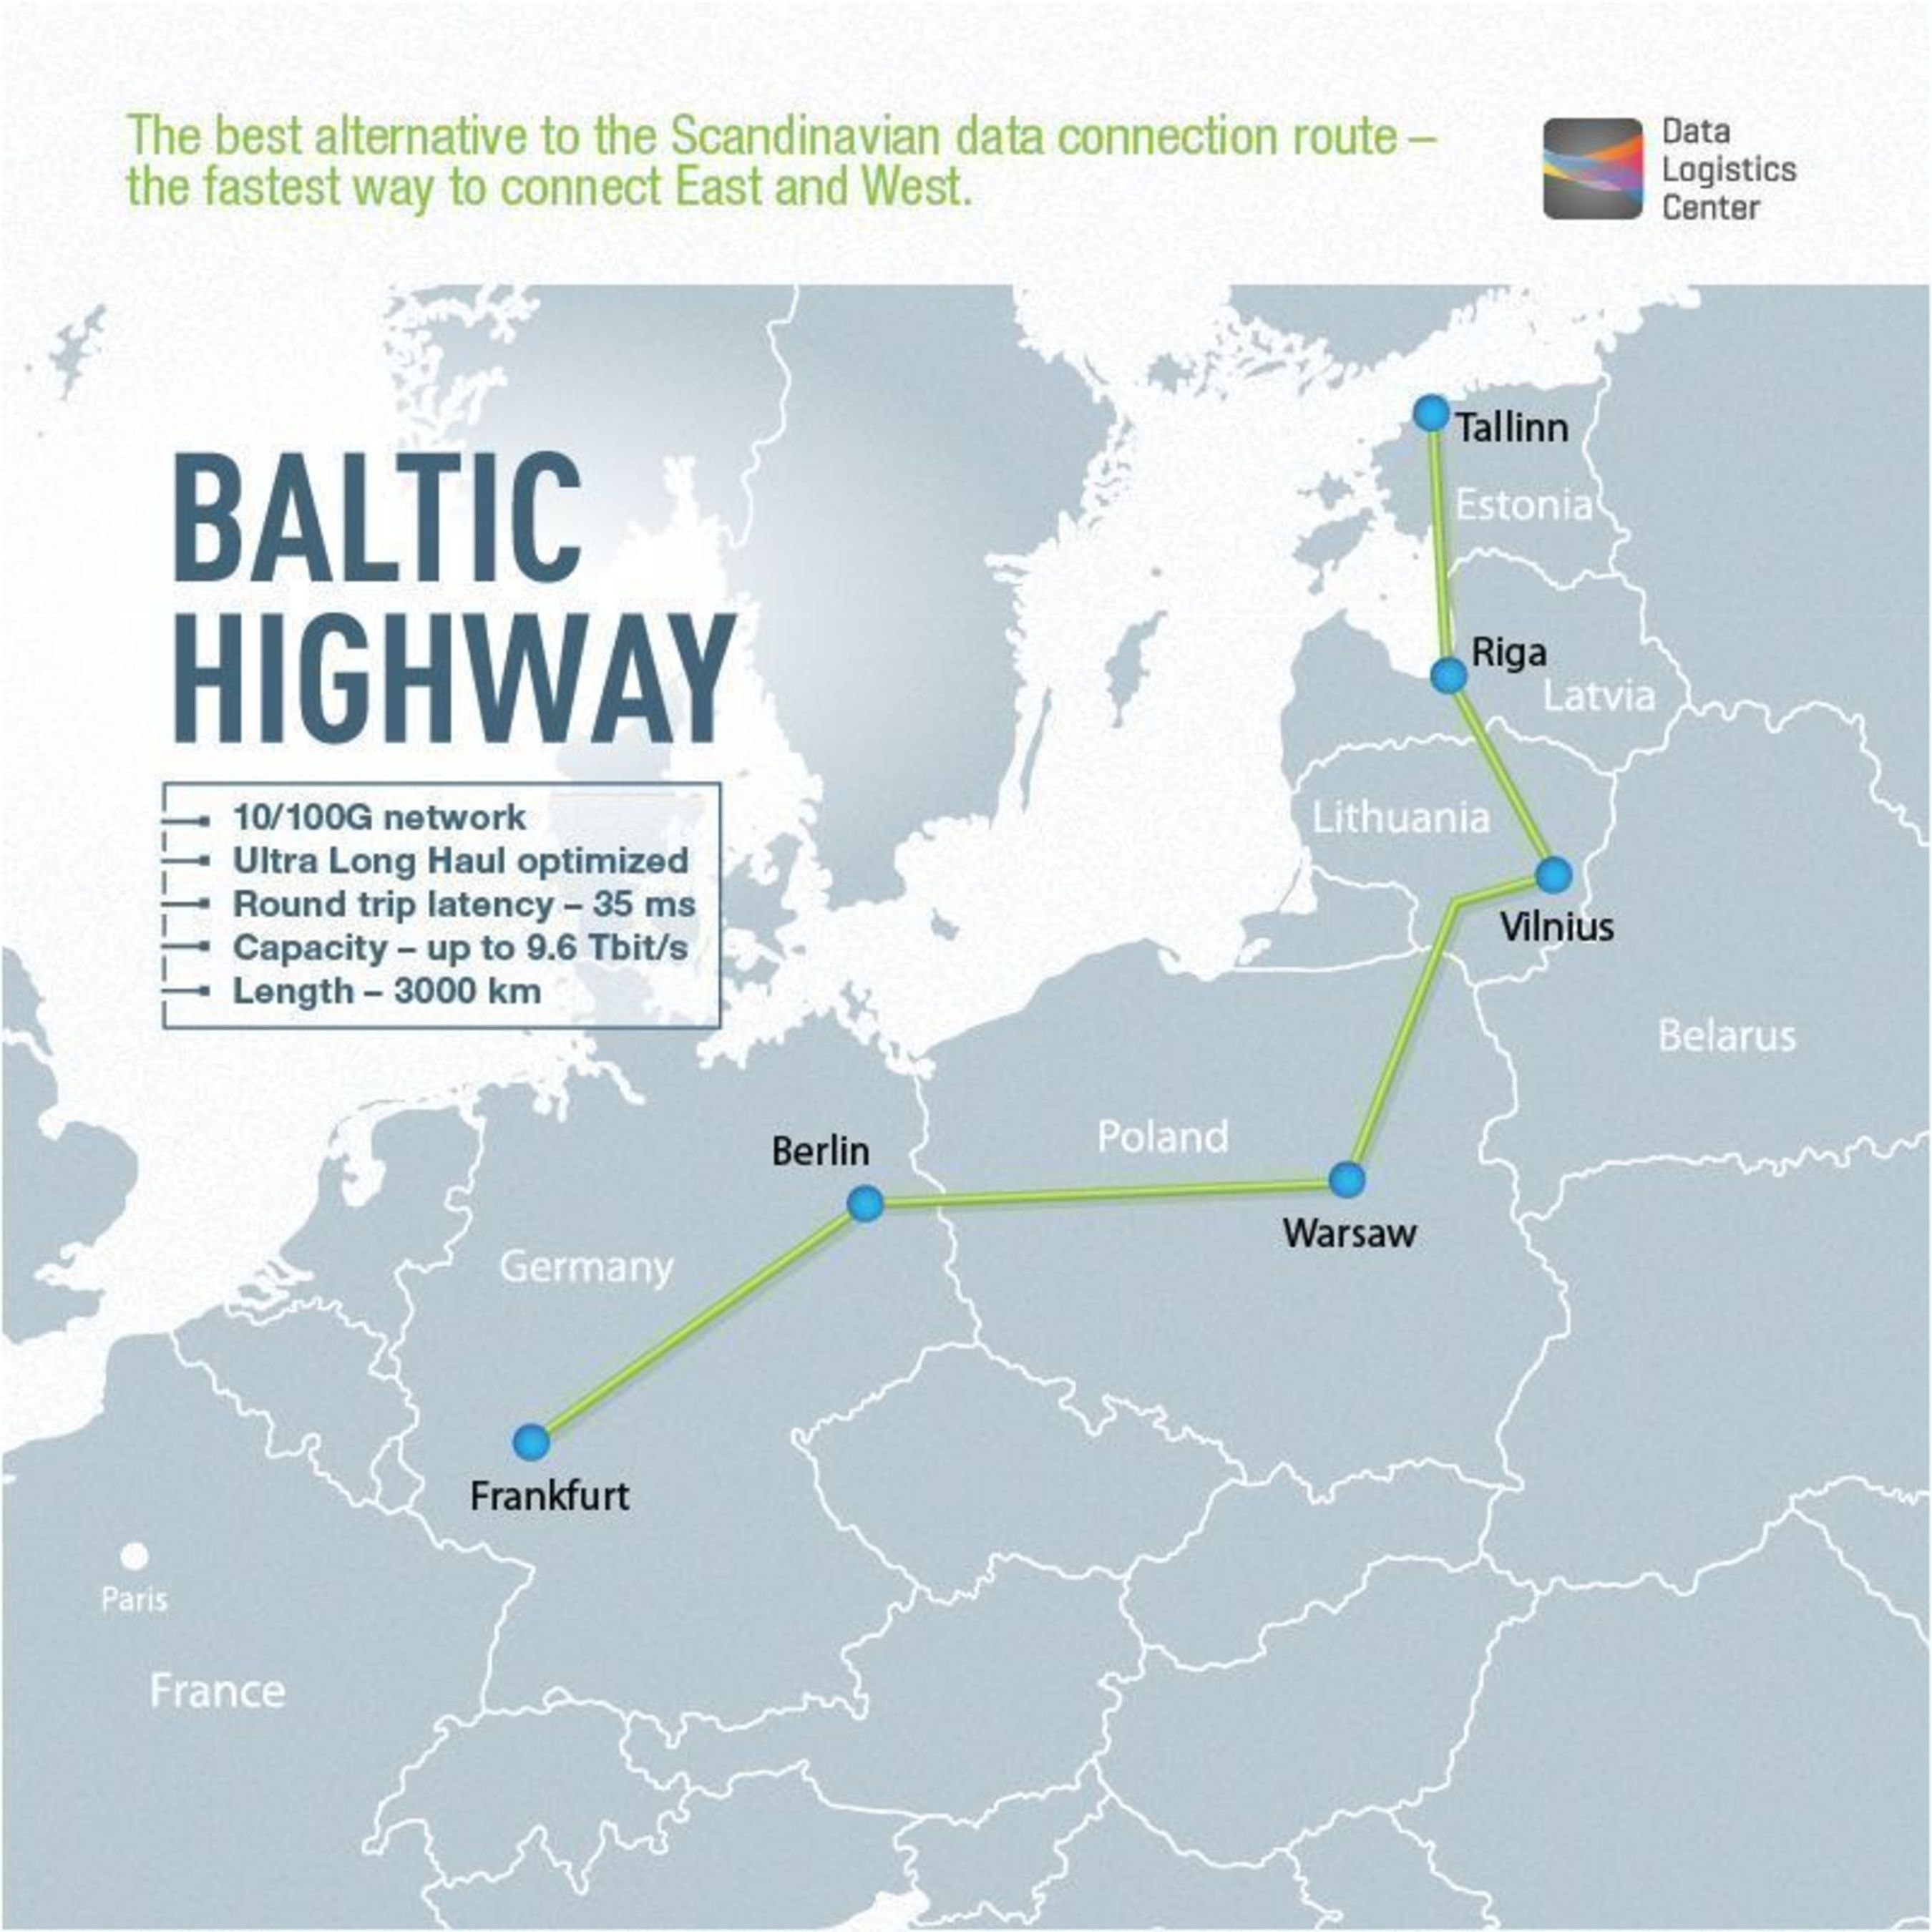 """Baltic Highway âeuro"""" the fastest way to connect East and West (PRNewsFoto/Data Logistics Center)"""